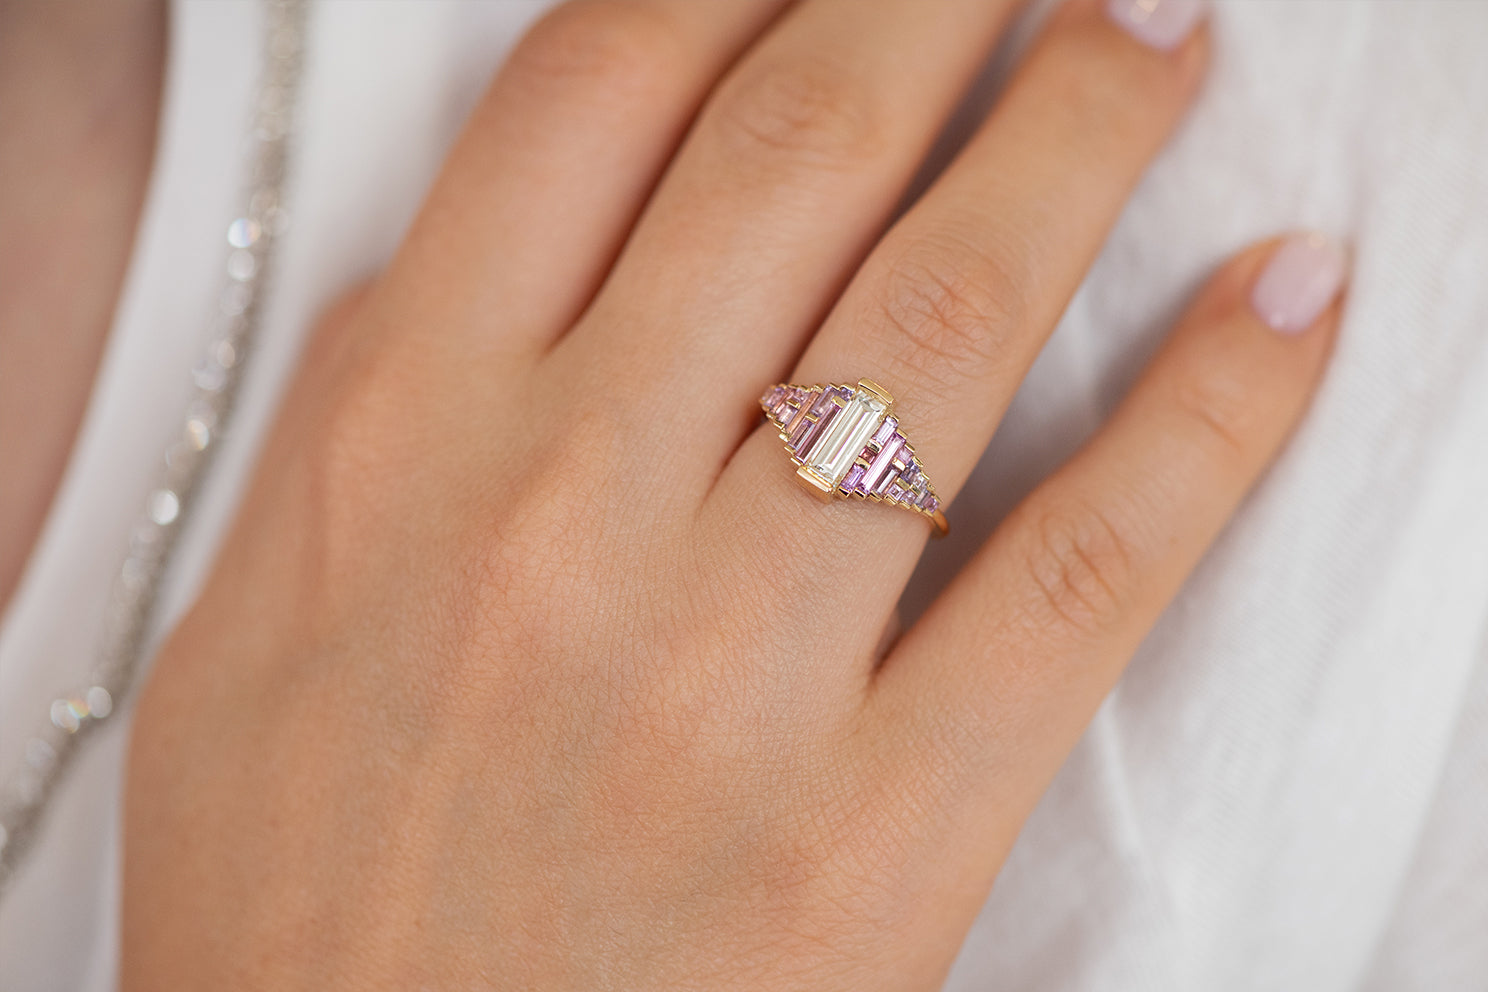 Purple and Lilac Sapphire Ring with Baguette Diamond on Hand in Sun